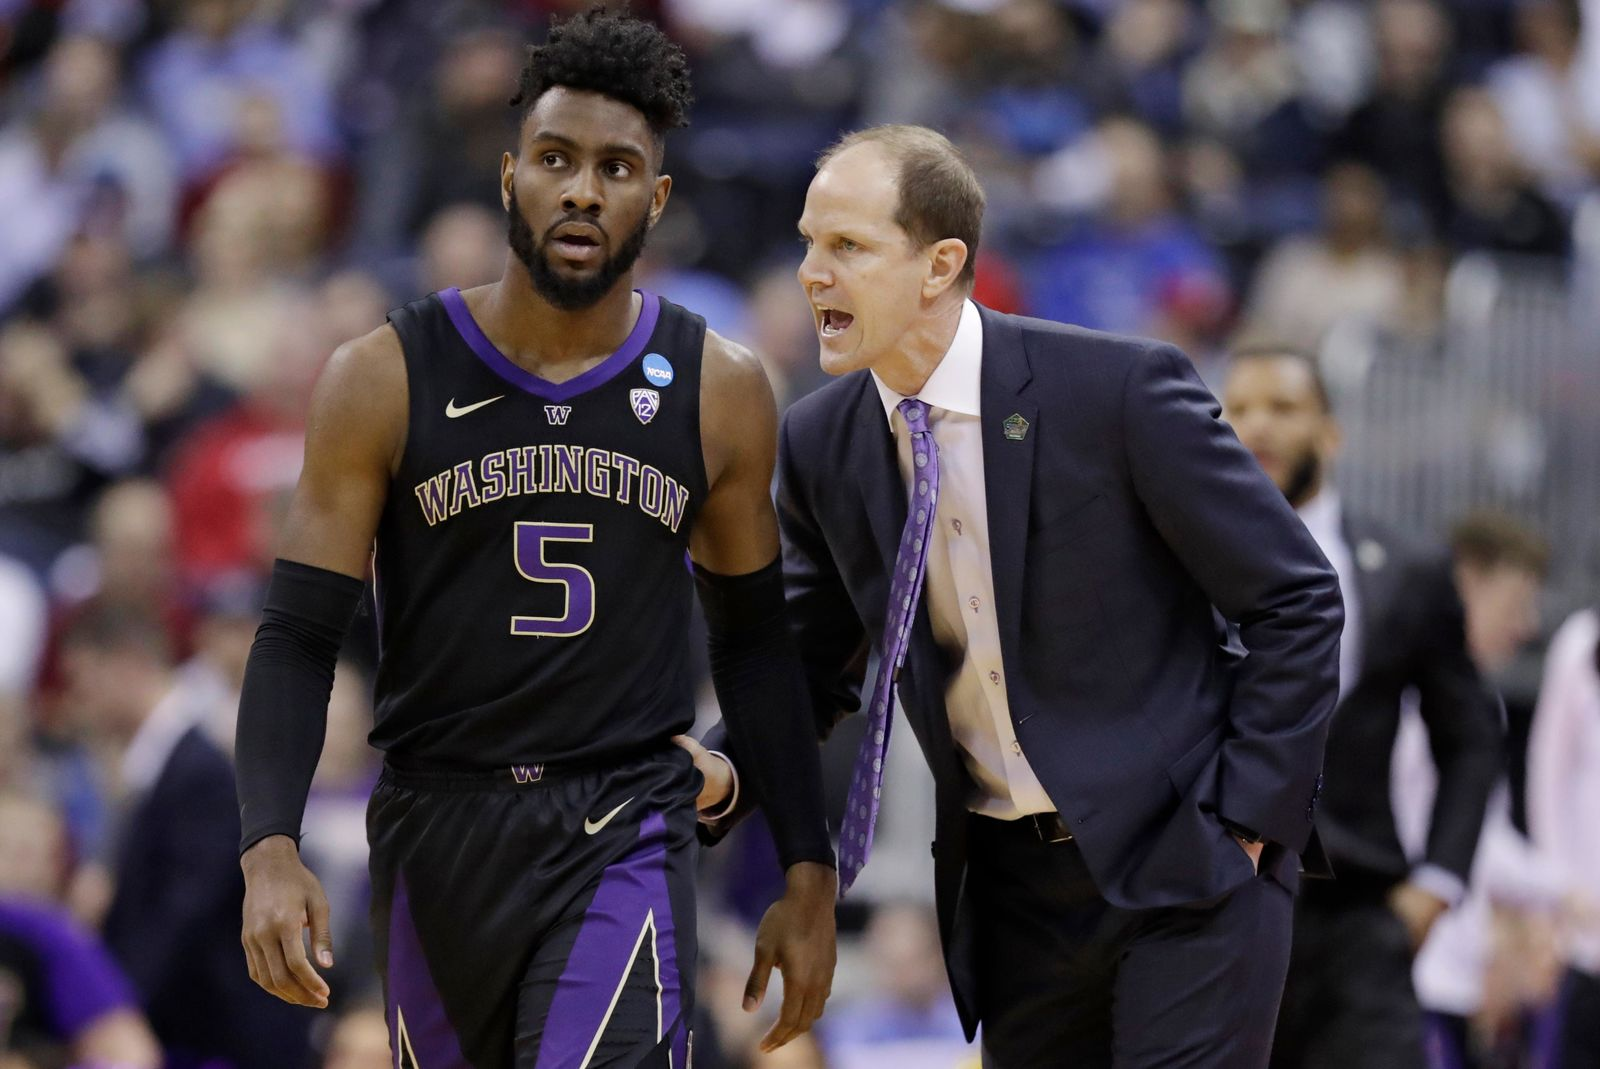 Washington head coach Mike Hopkins, right, talks with Jaylen Nowell in the first half against Utah State during a first round men's college basketball game in the NCAA Tournament in Columbus, Ohio, Friday, March 22, 2019. (AP Photo/Tony Dejak)